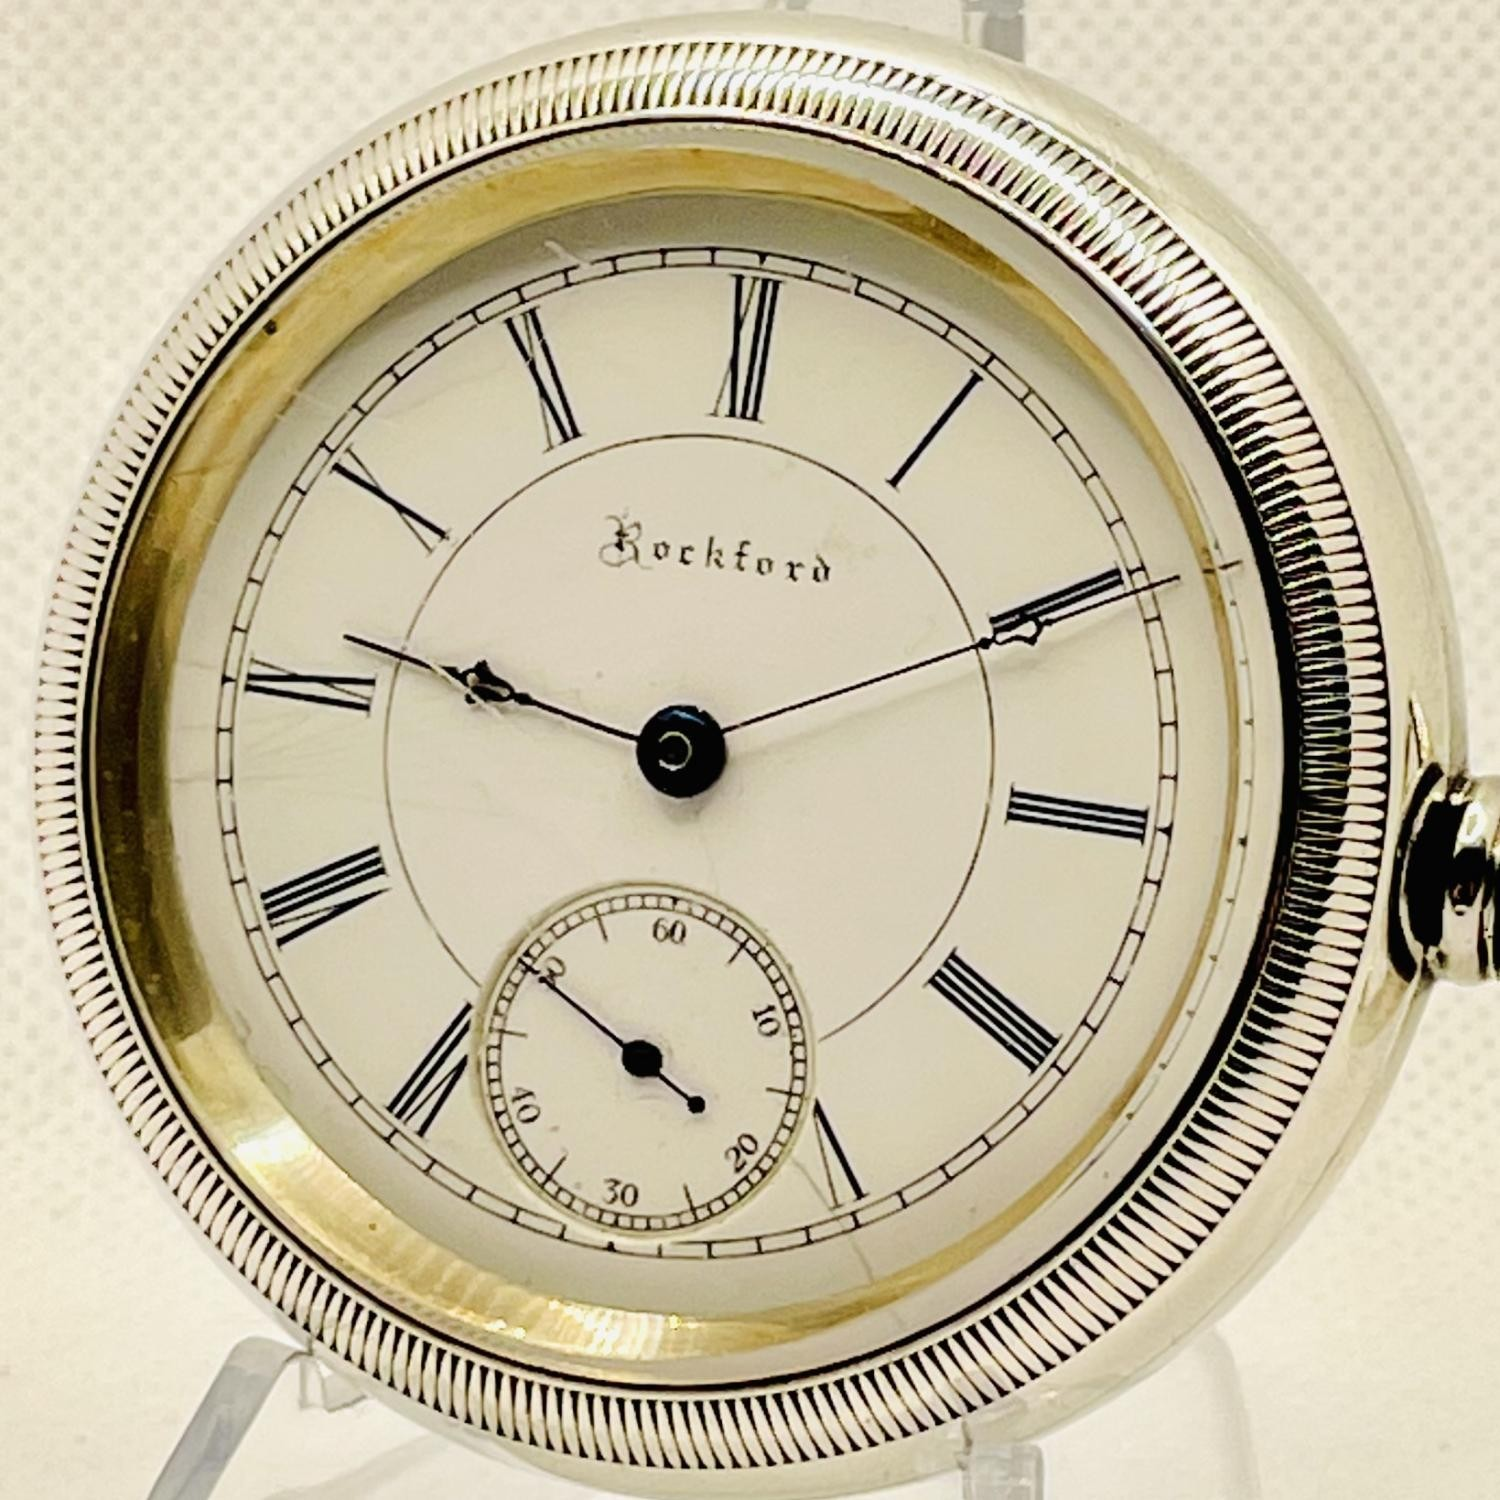 Image of Rockford 83 #426526 Dial